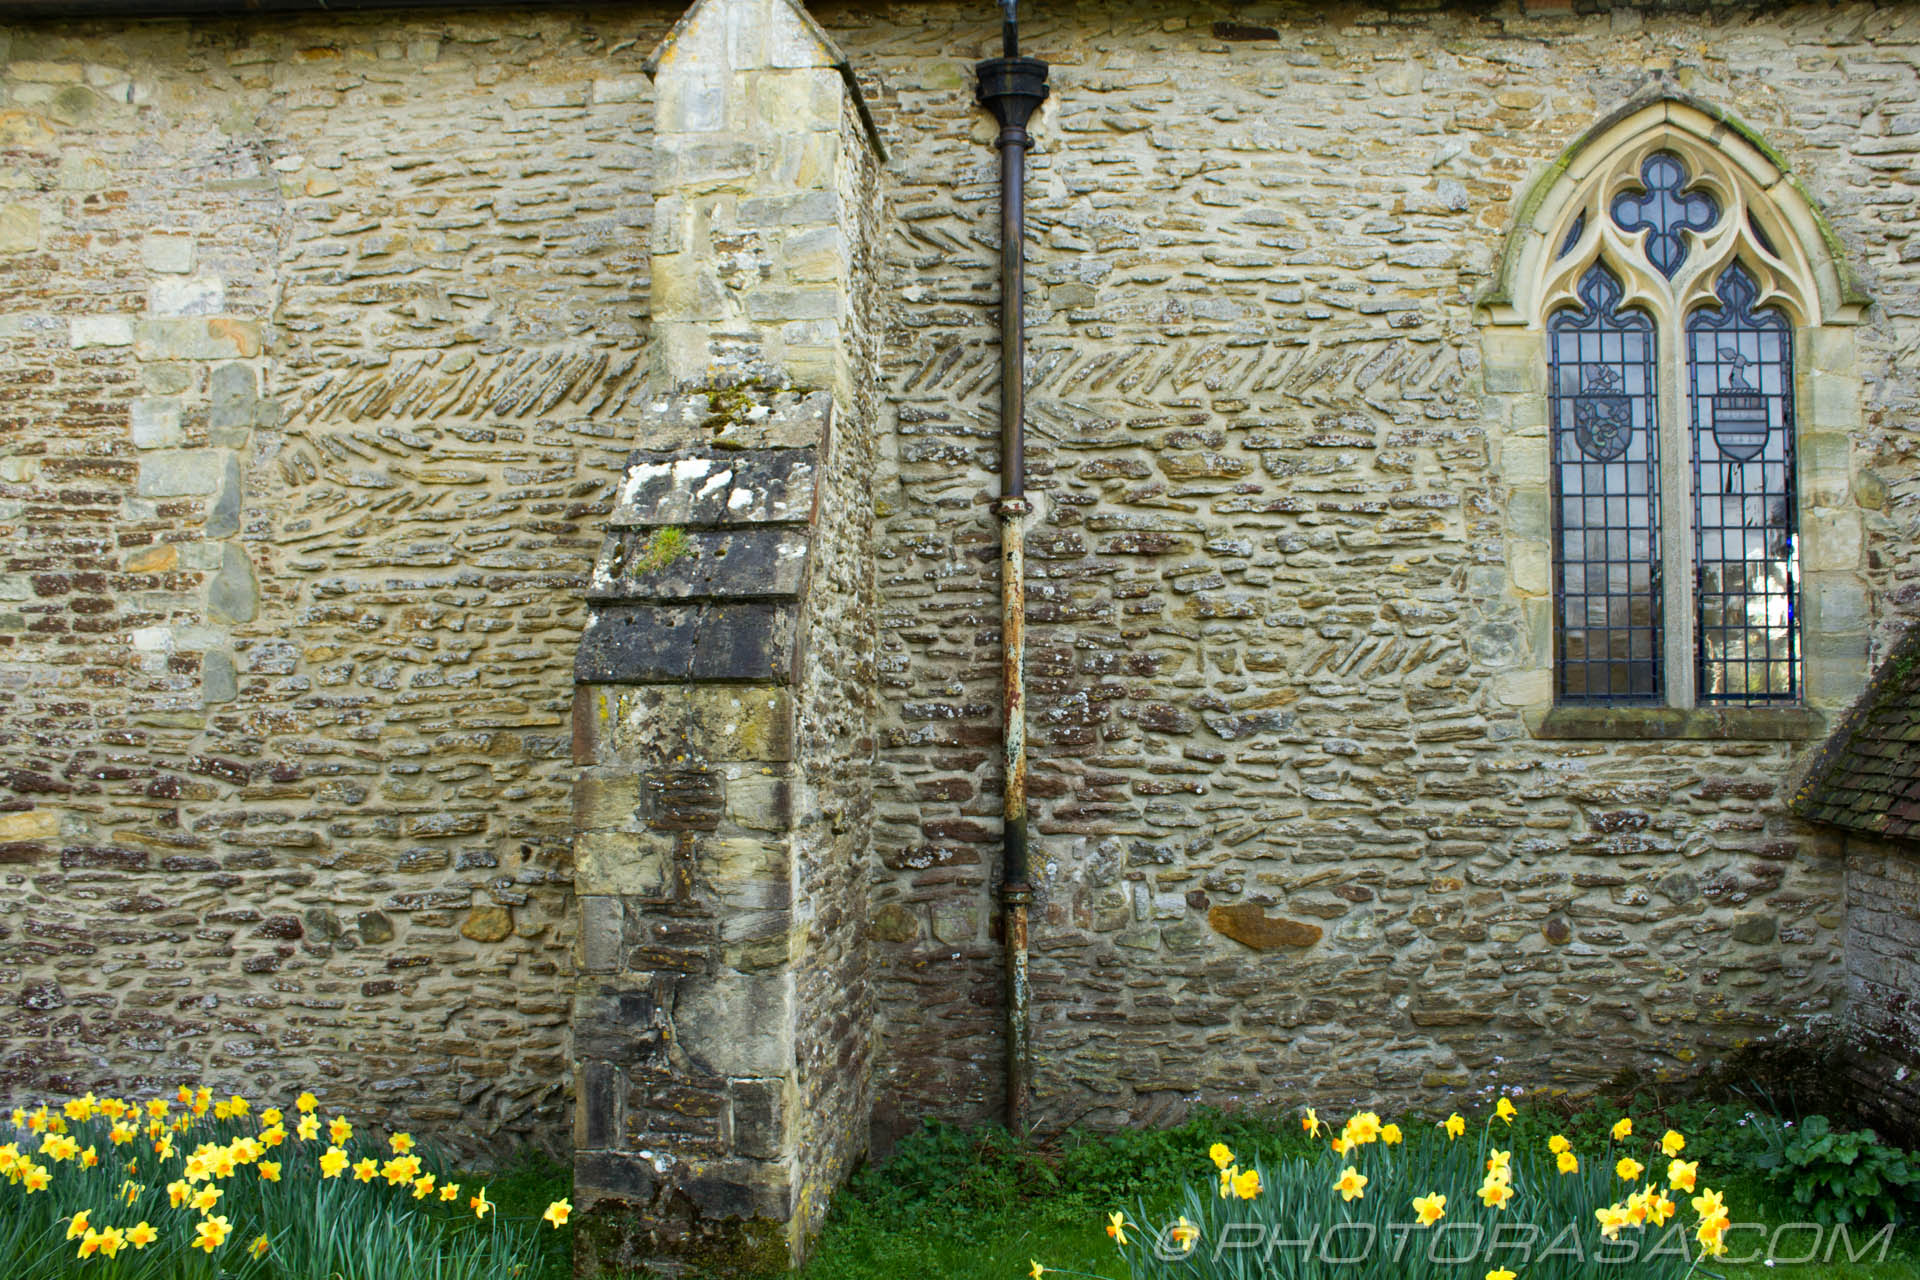 http://photorasa.com/saints-church-staplehurst-kent/medieval-herring-bone-brickwork/